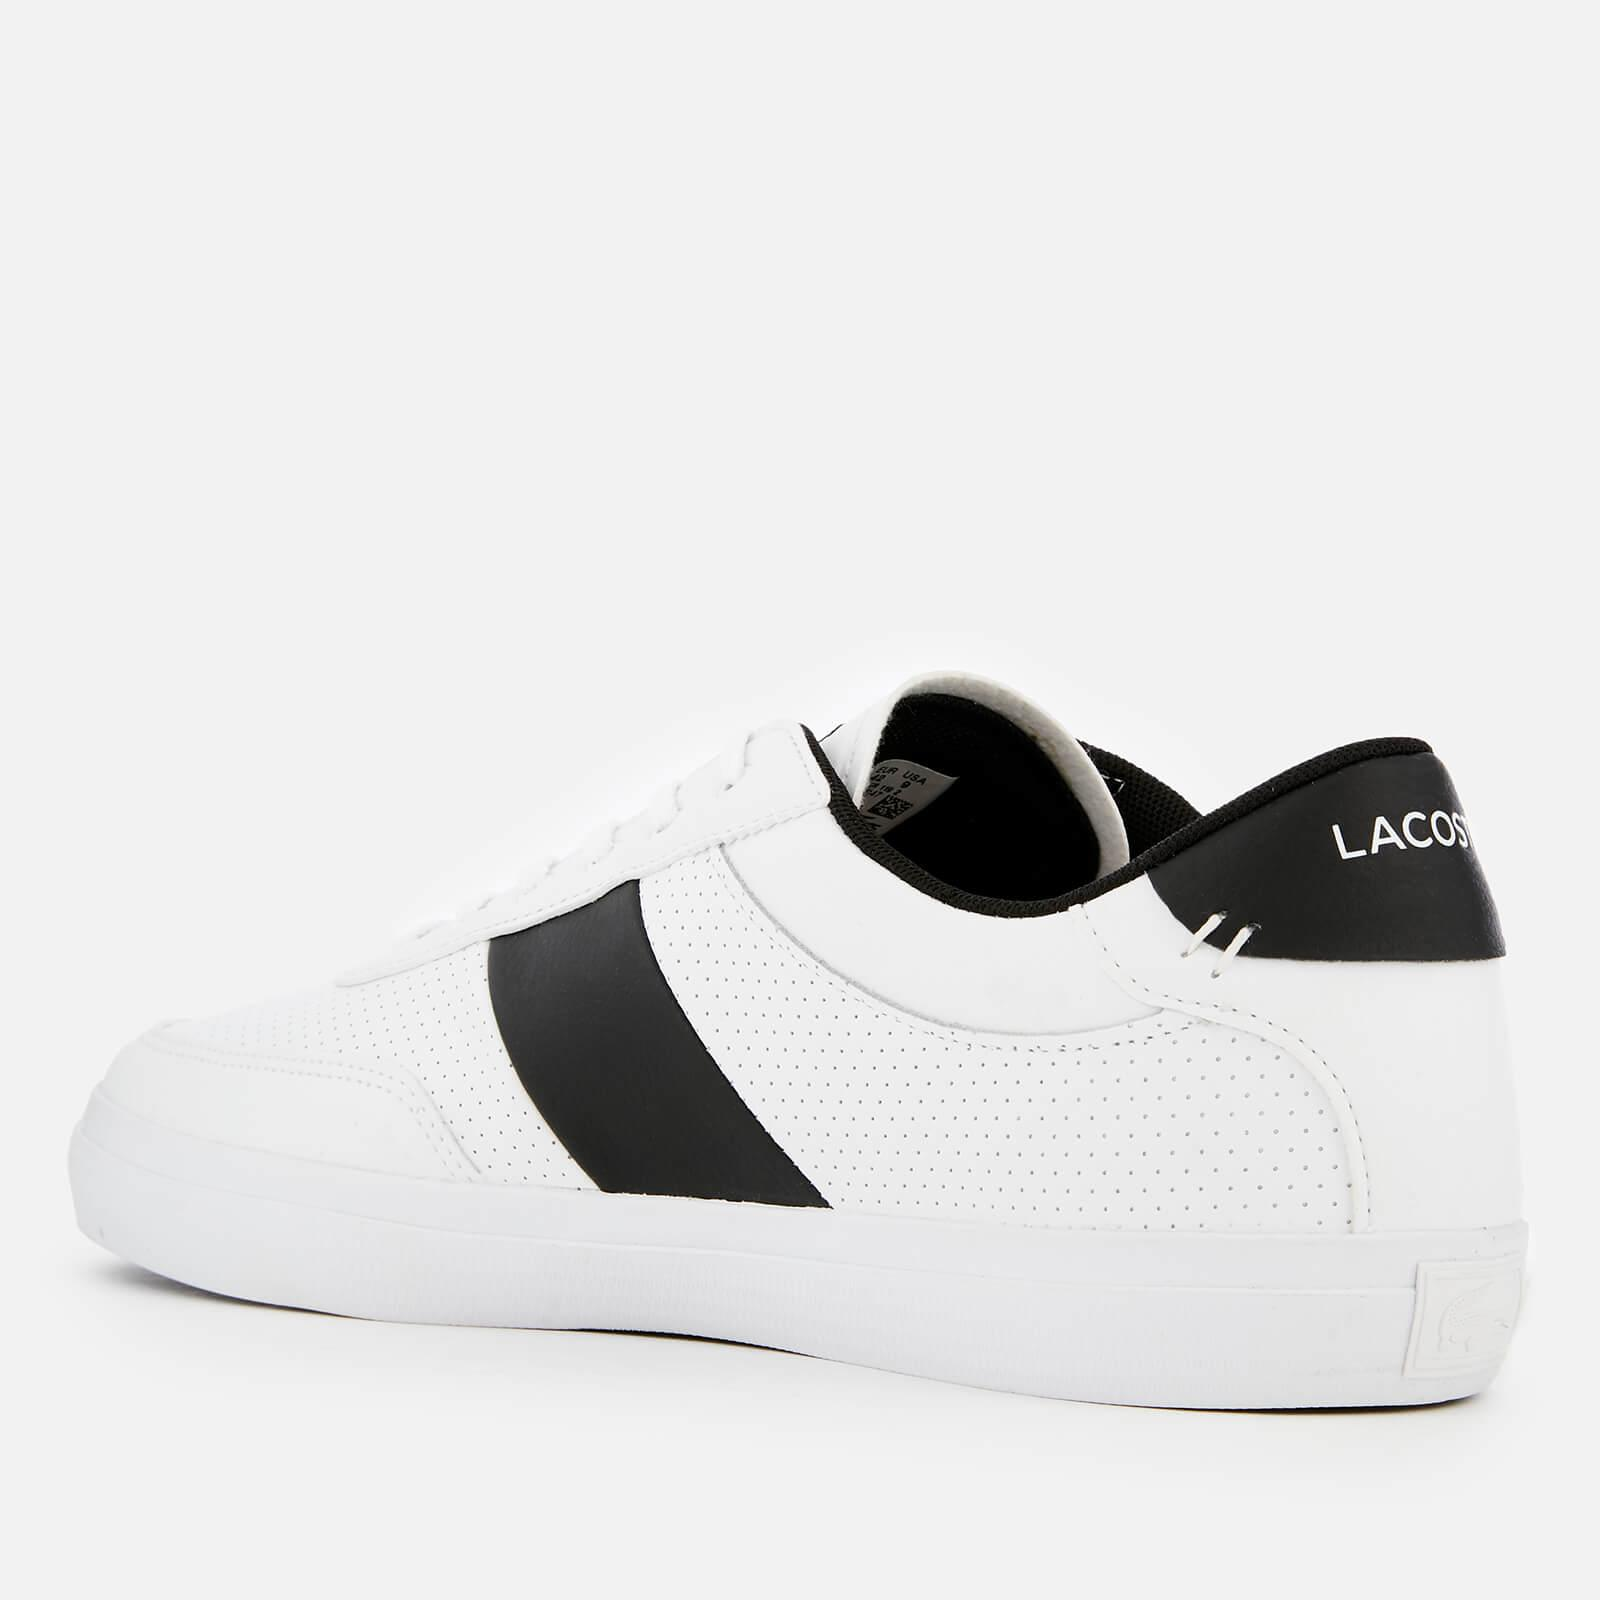 b441ffacf Lacoste Court-master 119 2 Perforated Leather Trainers in White for ...